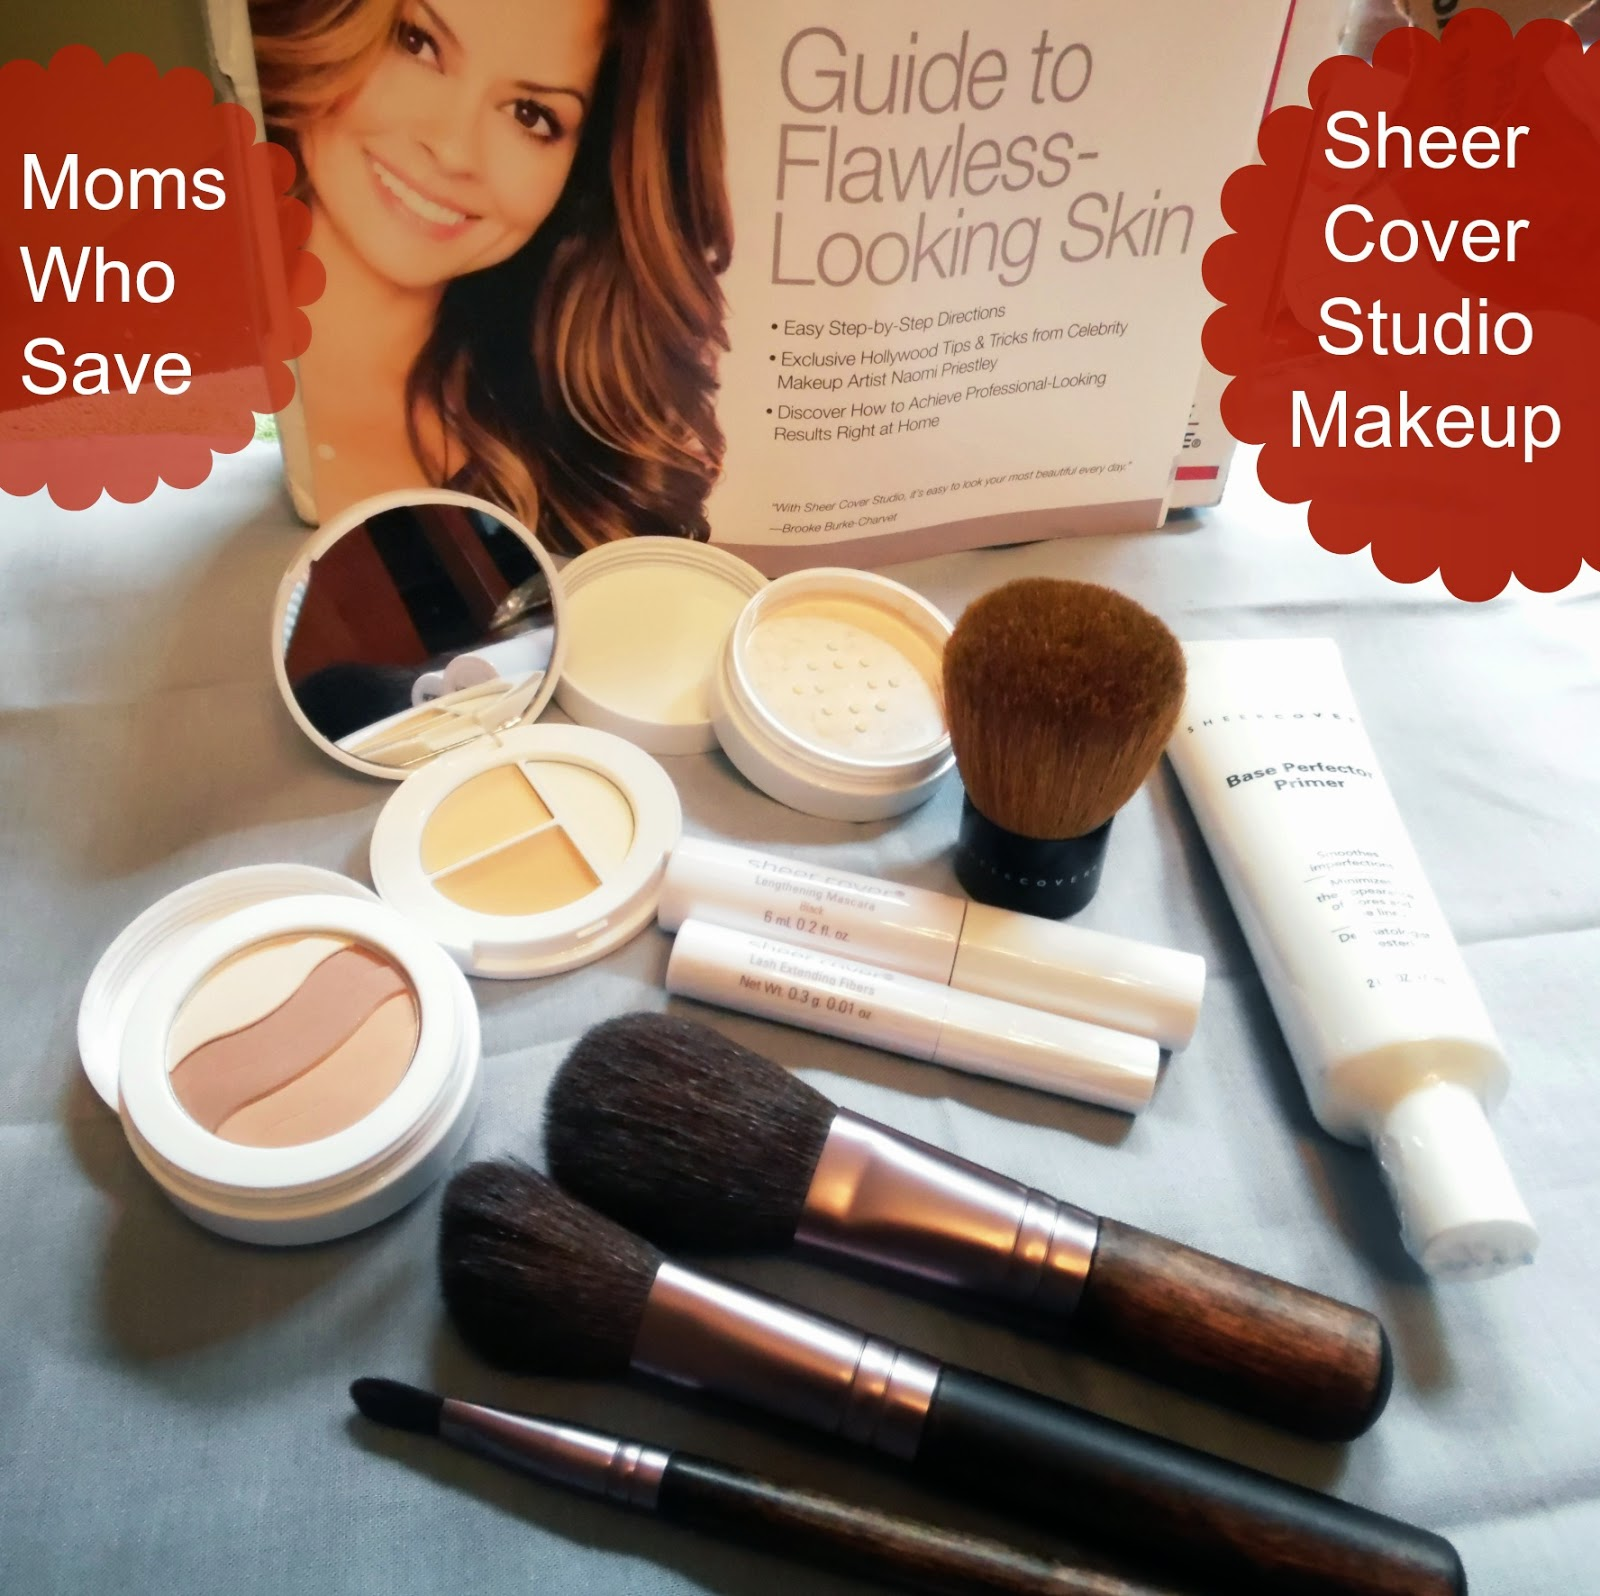 Get a #FlawlessFinish With Sheer Cover Studio Makeup + a Limited Time Discount!